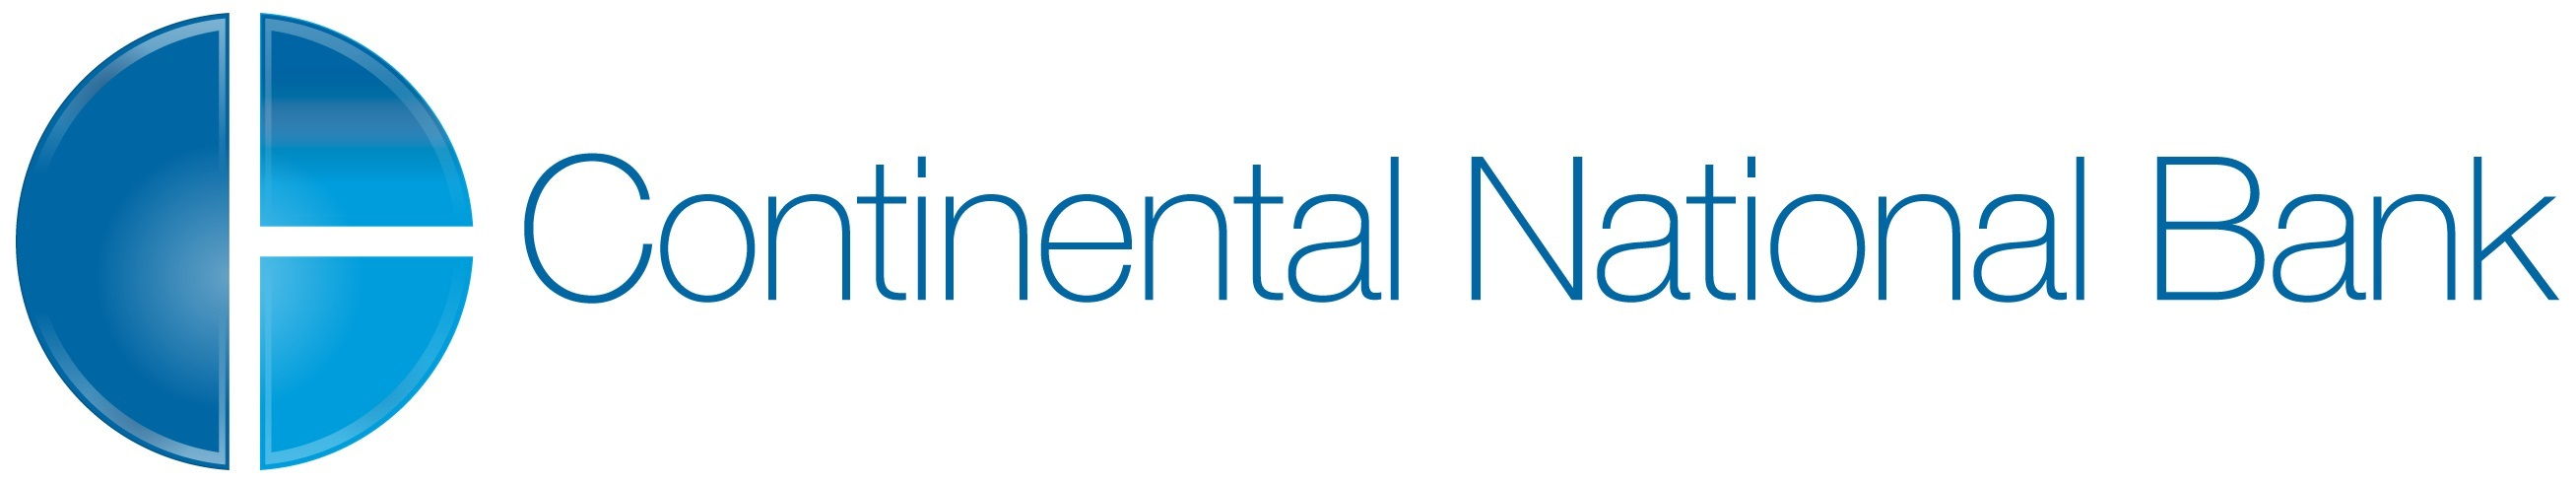 doral chamber of commerce member continental national bank banking